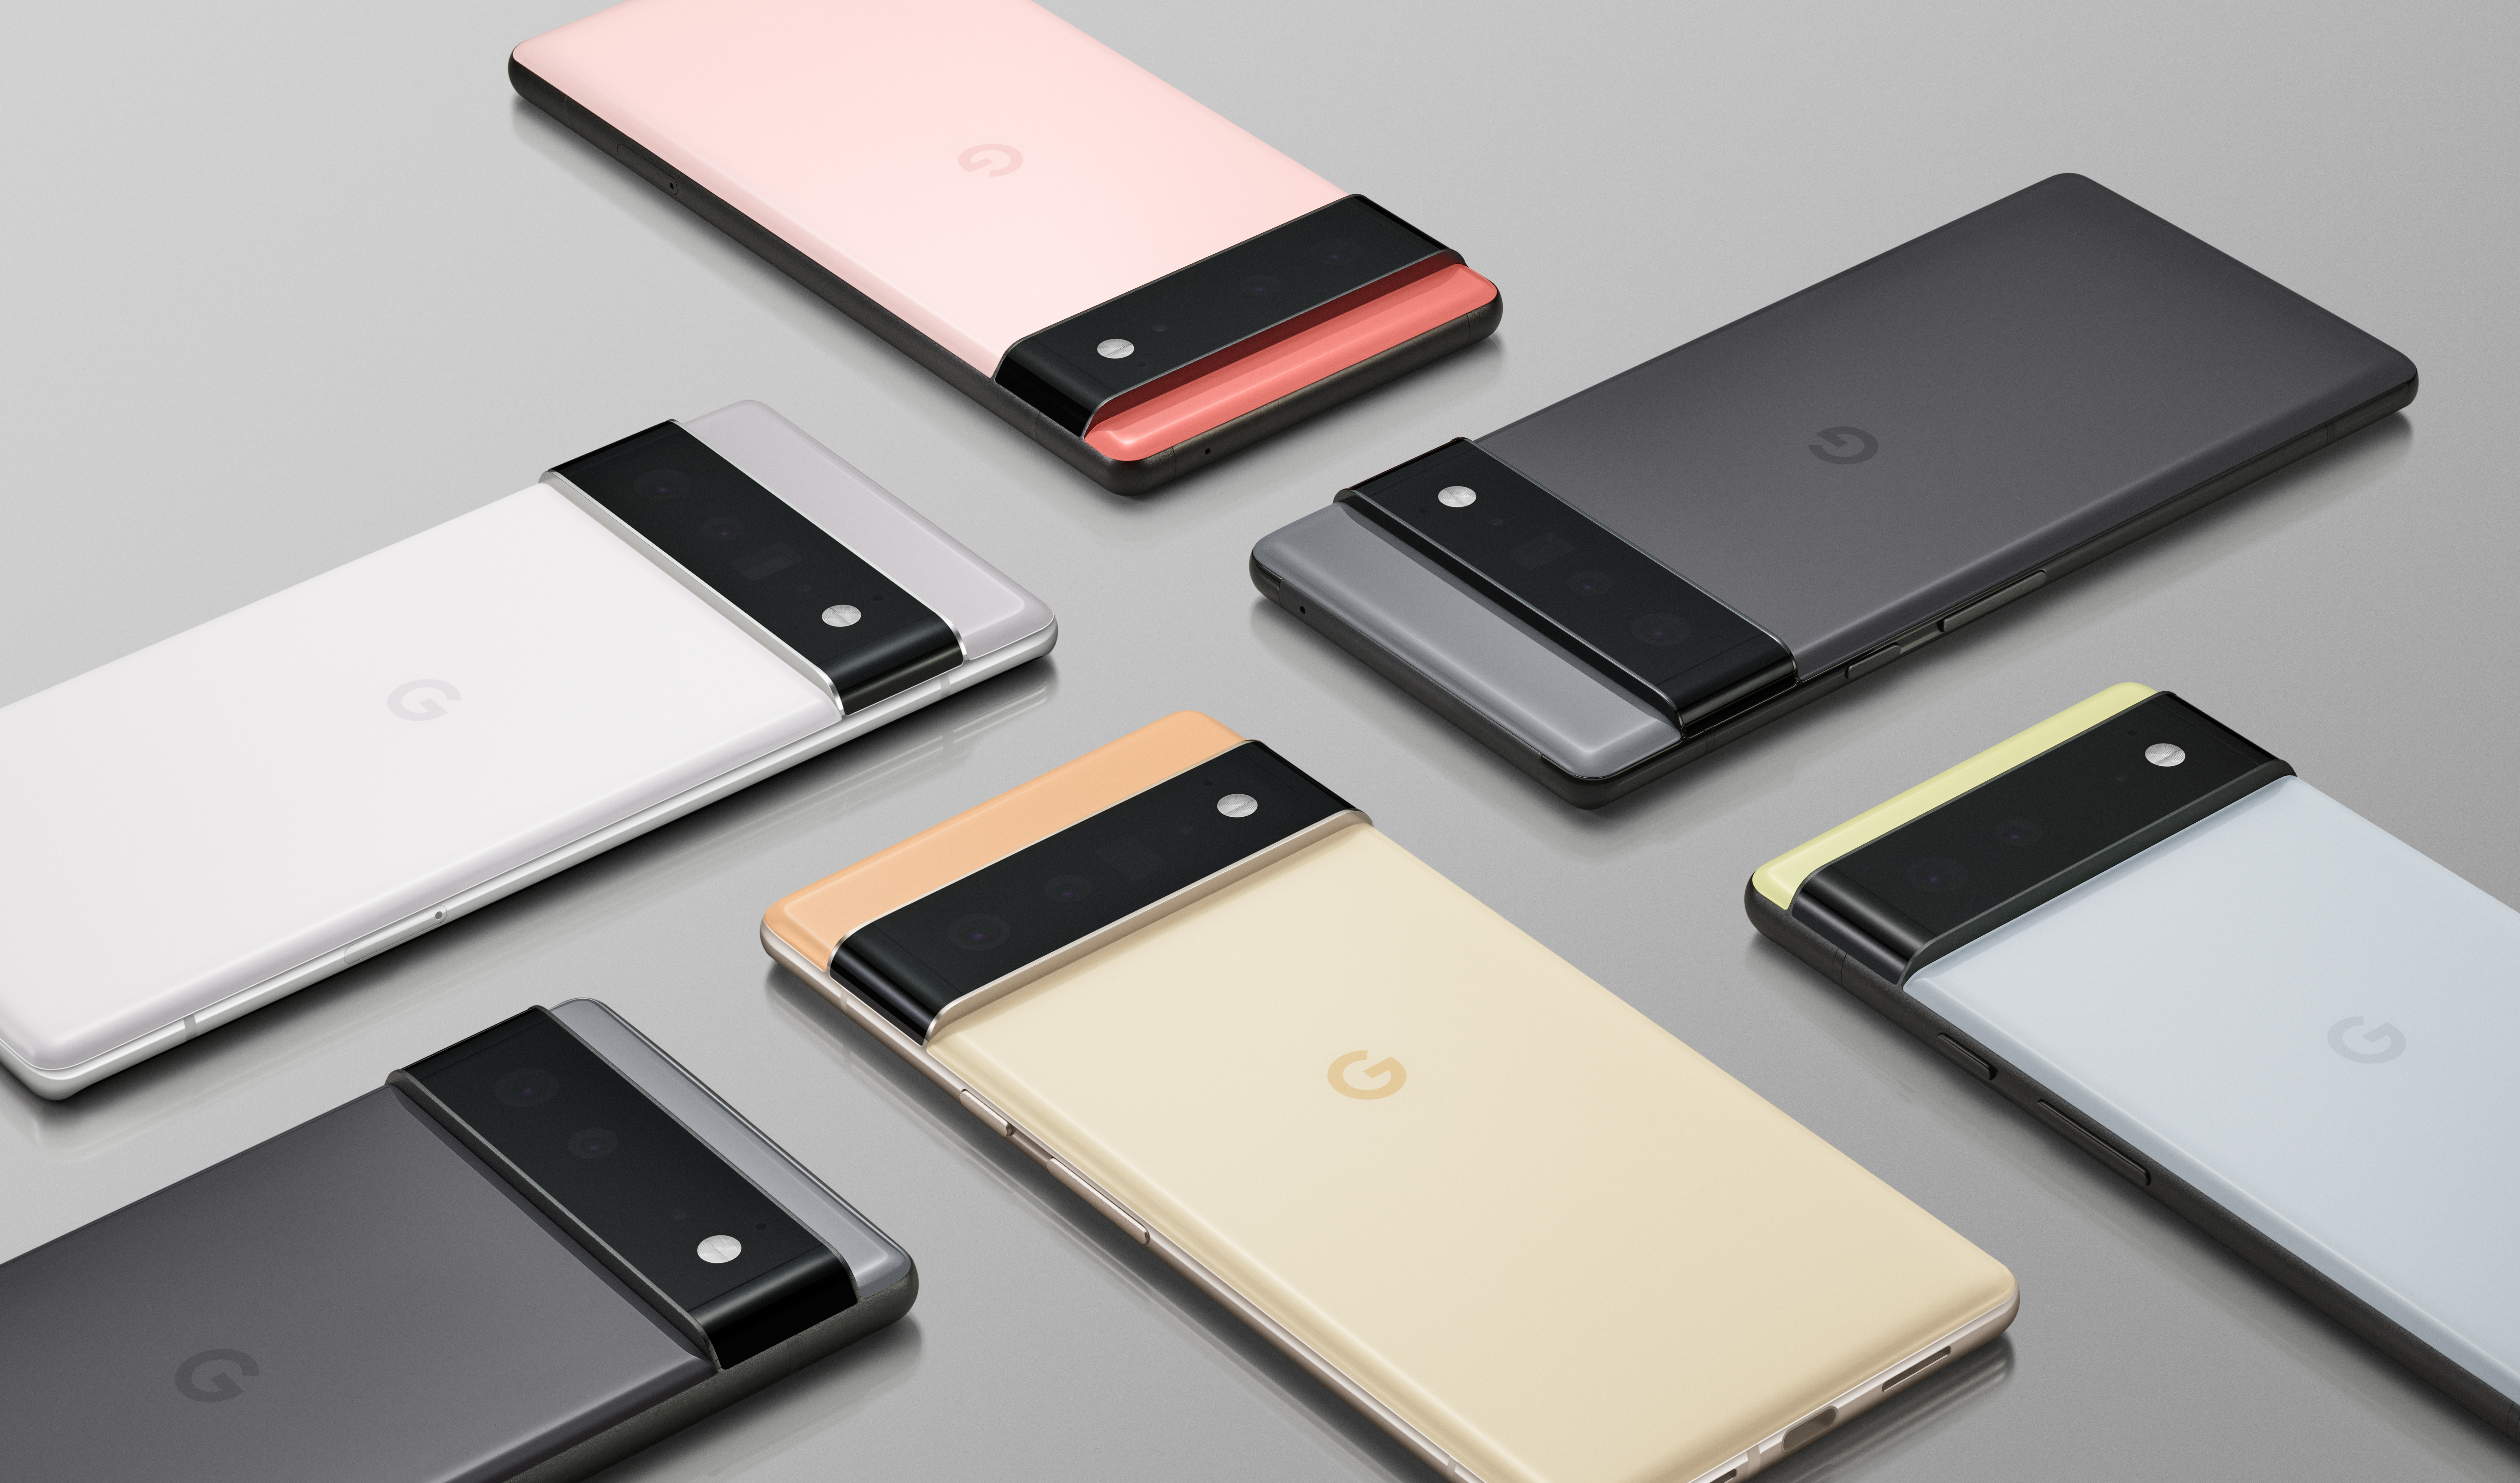 The Google Pixel 6 and 6 Pro lineup